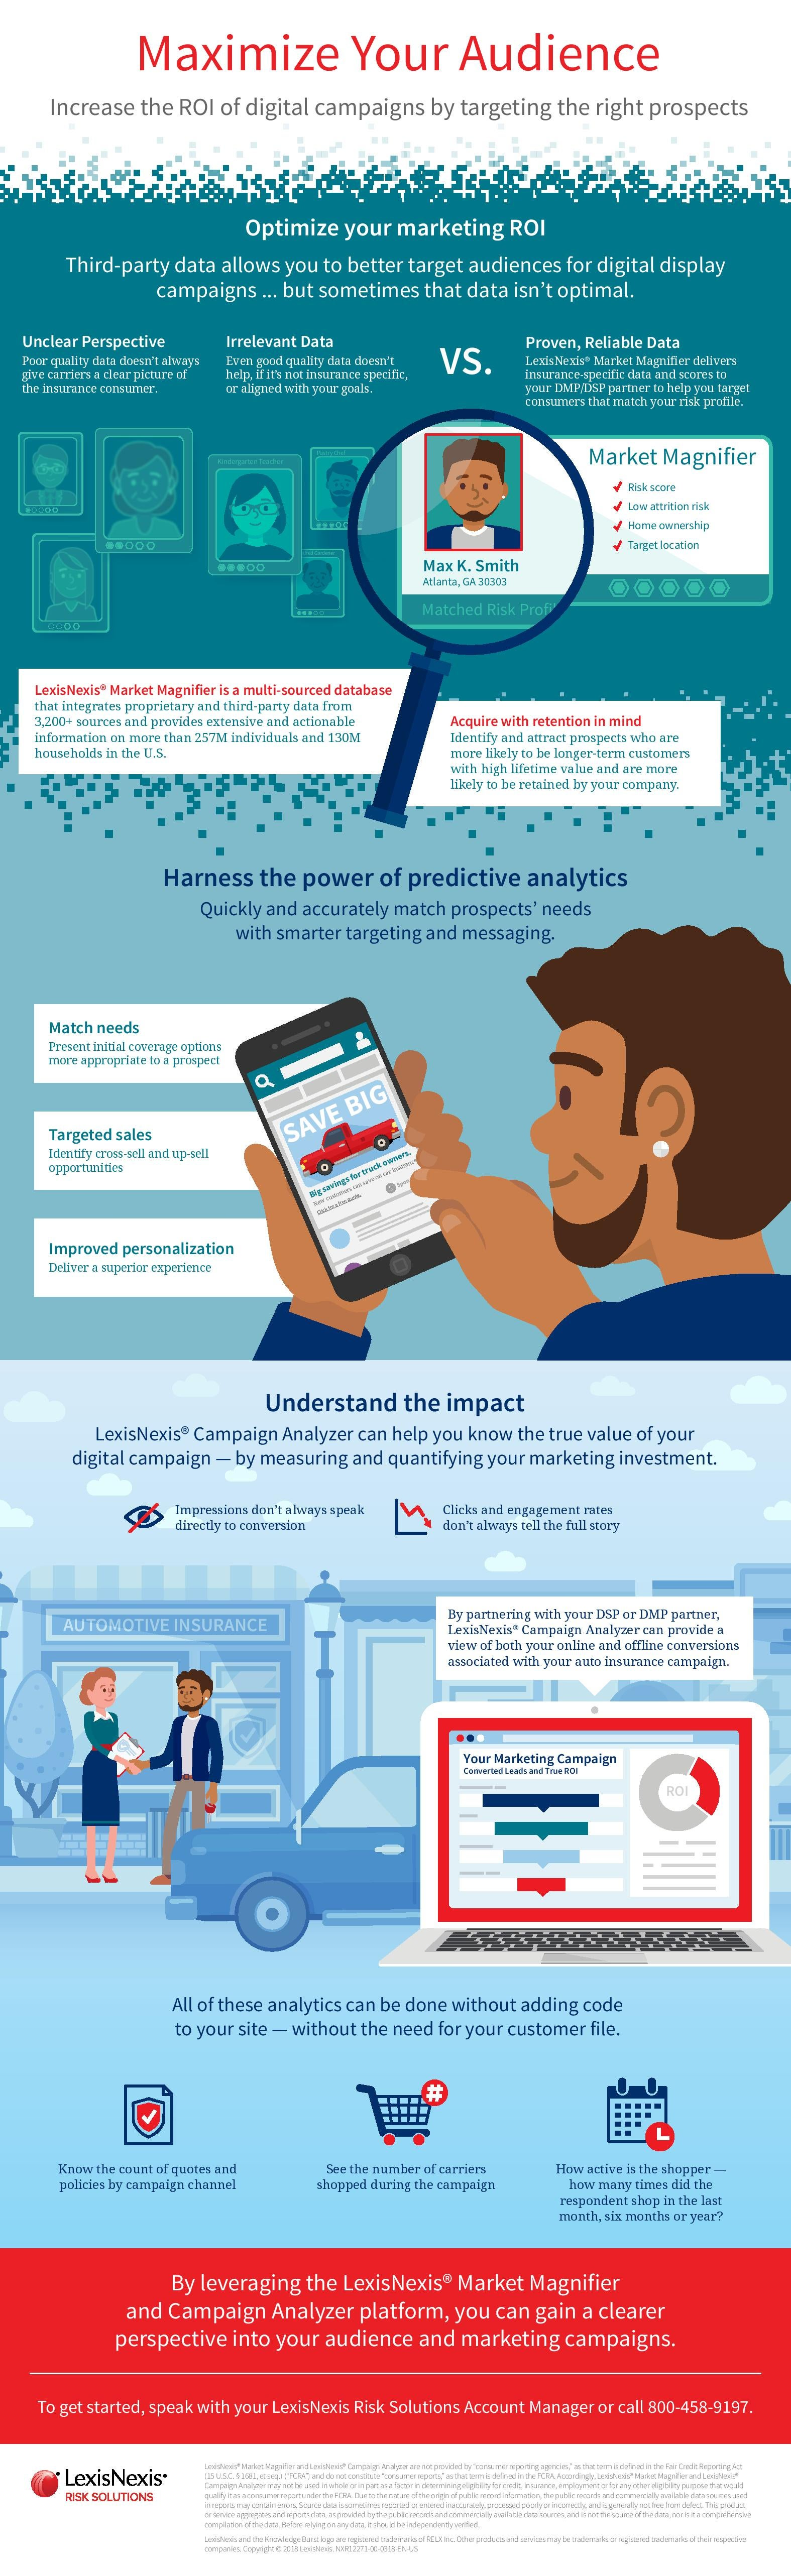 Market Magnifier and Campaign Analyzer Infographic